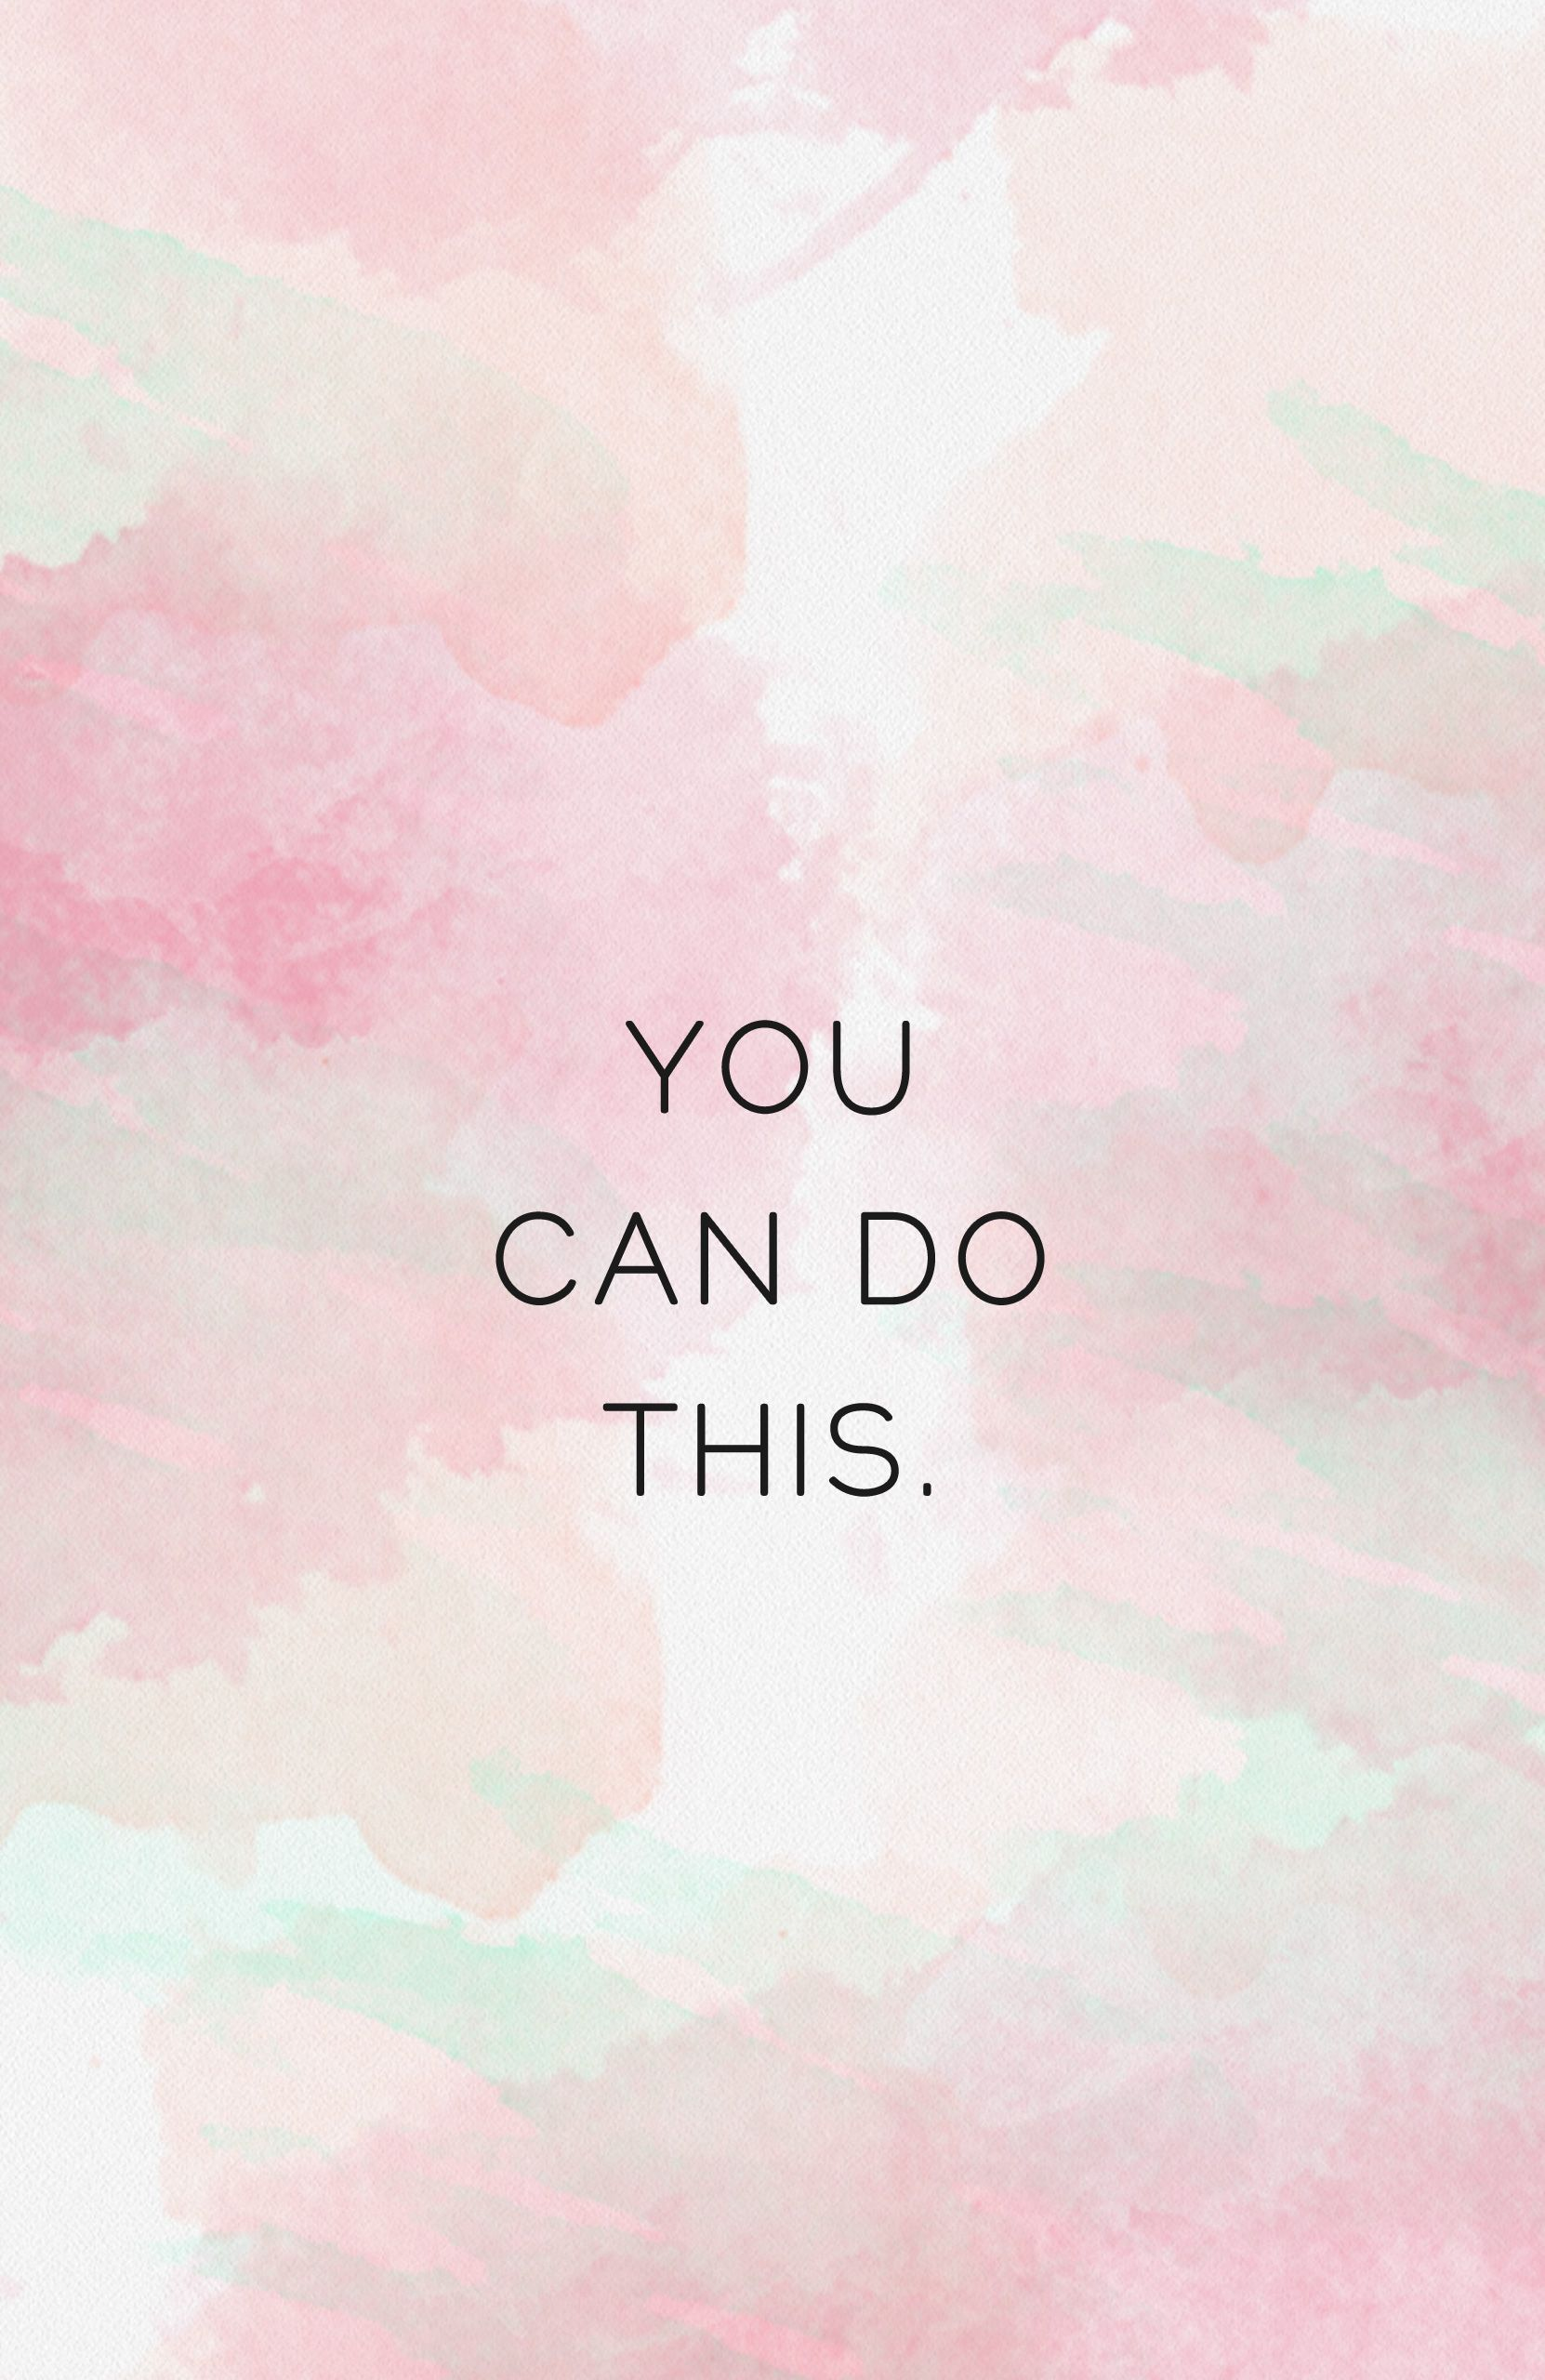 You_Can_Do_This_iPhone.jpg 1,662×2,560 pixels Frases